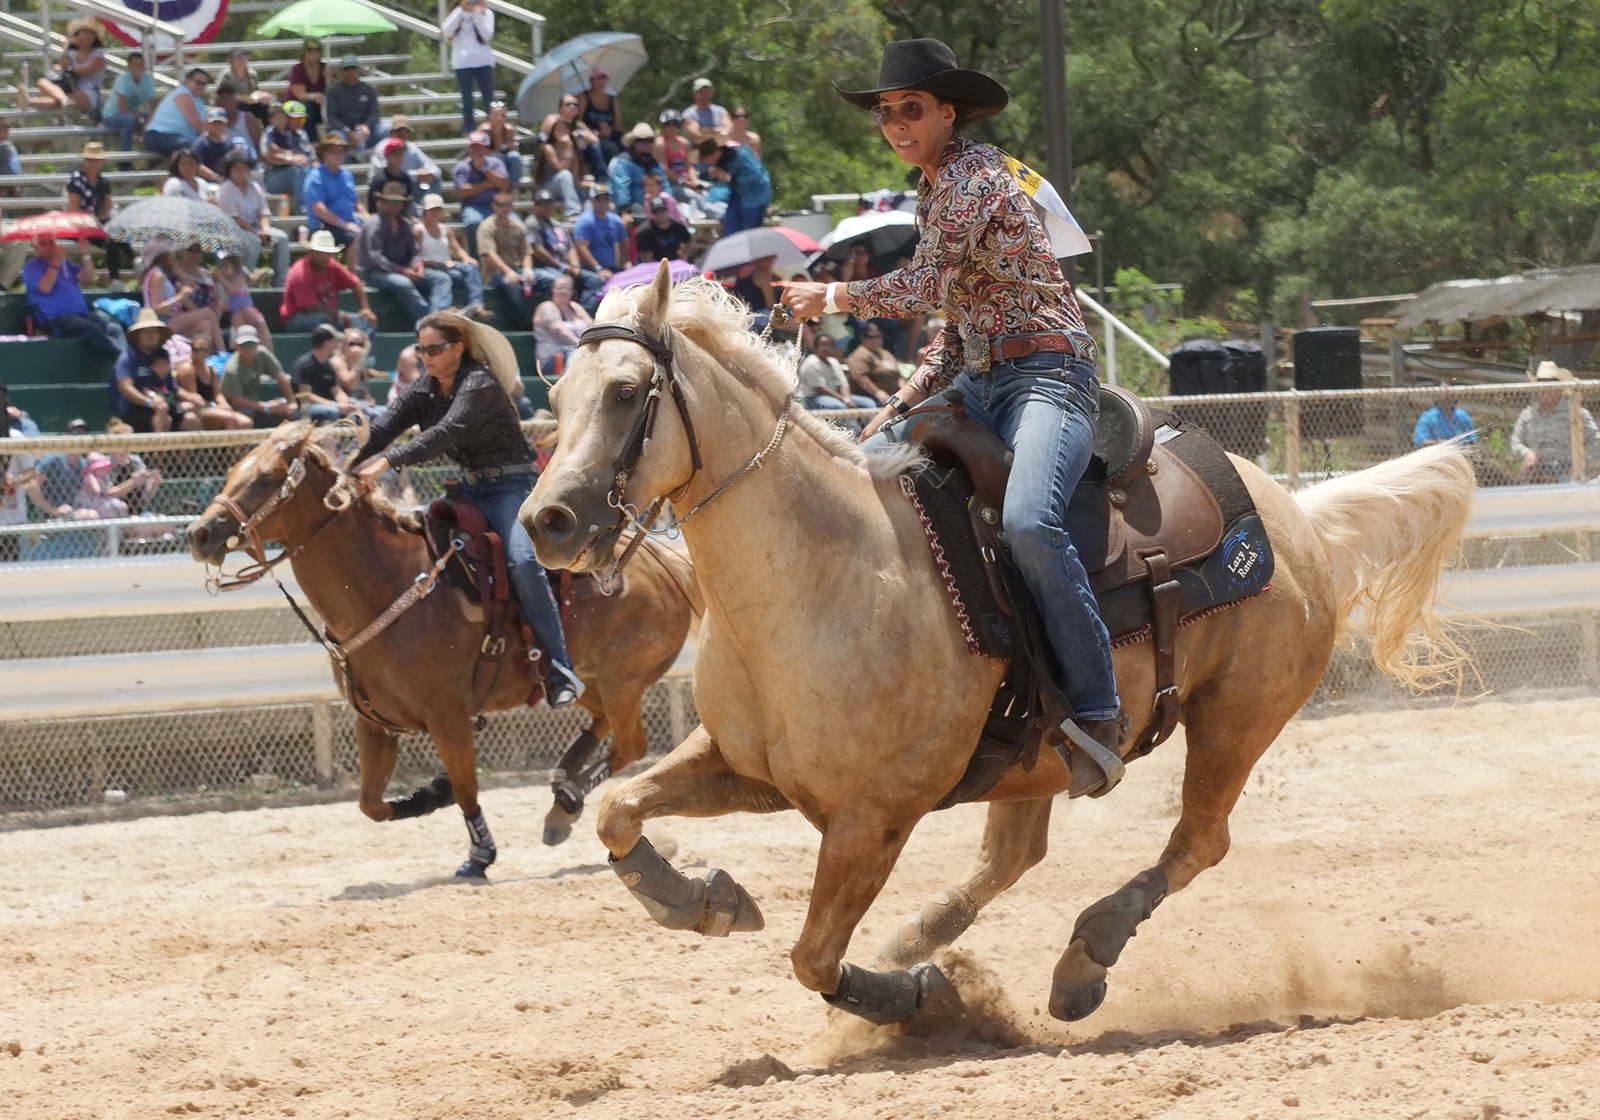 <p>Two women compete during the barrel racing event.</p>